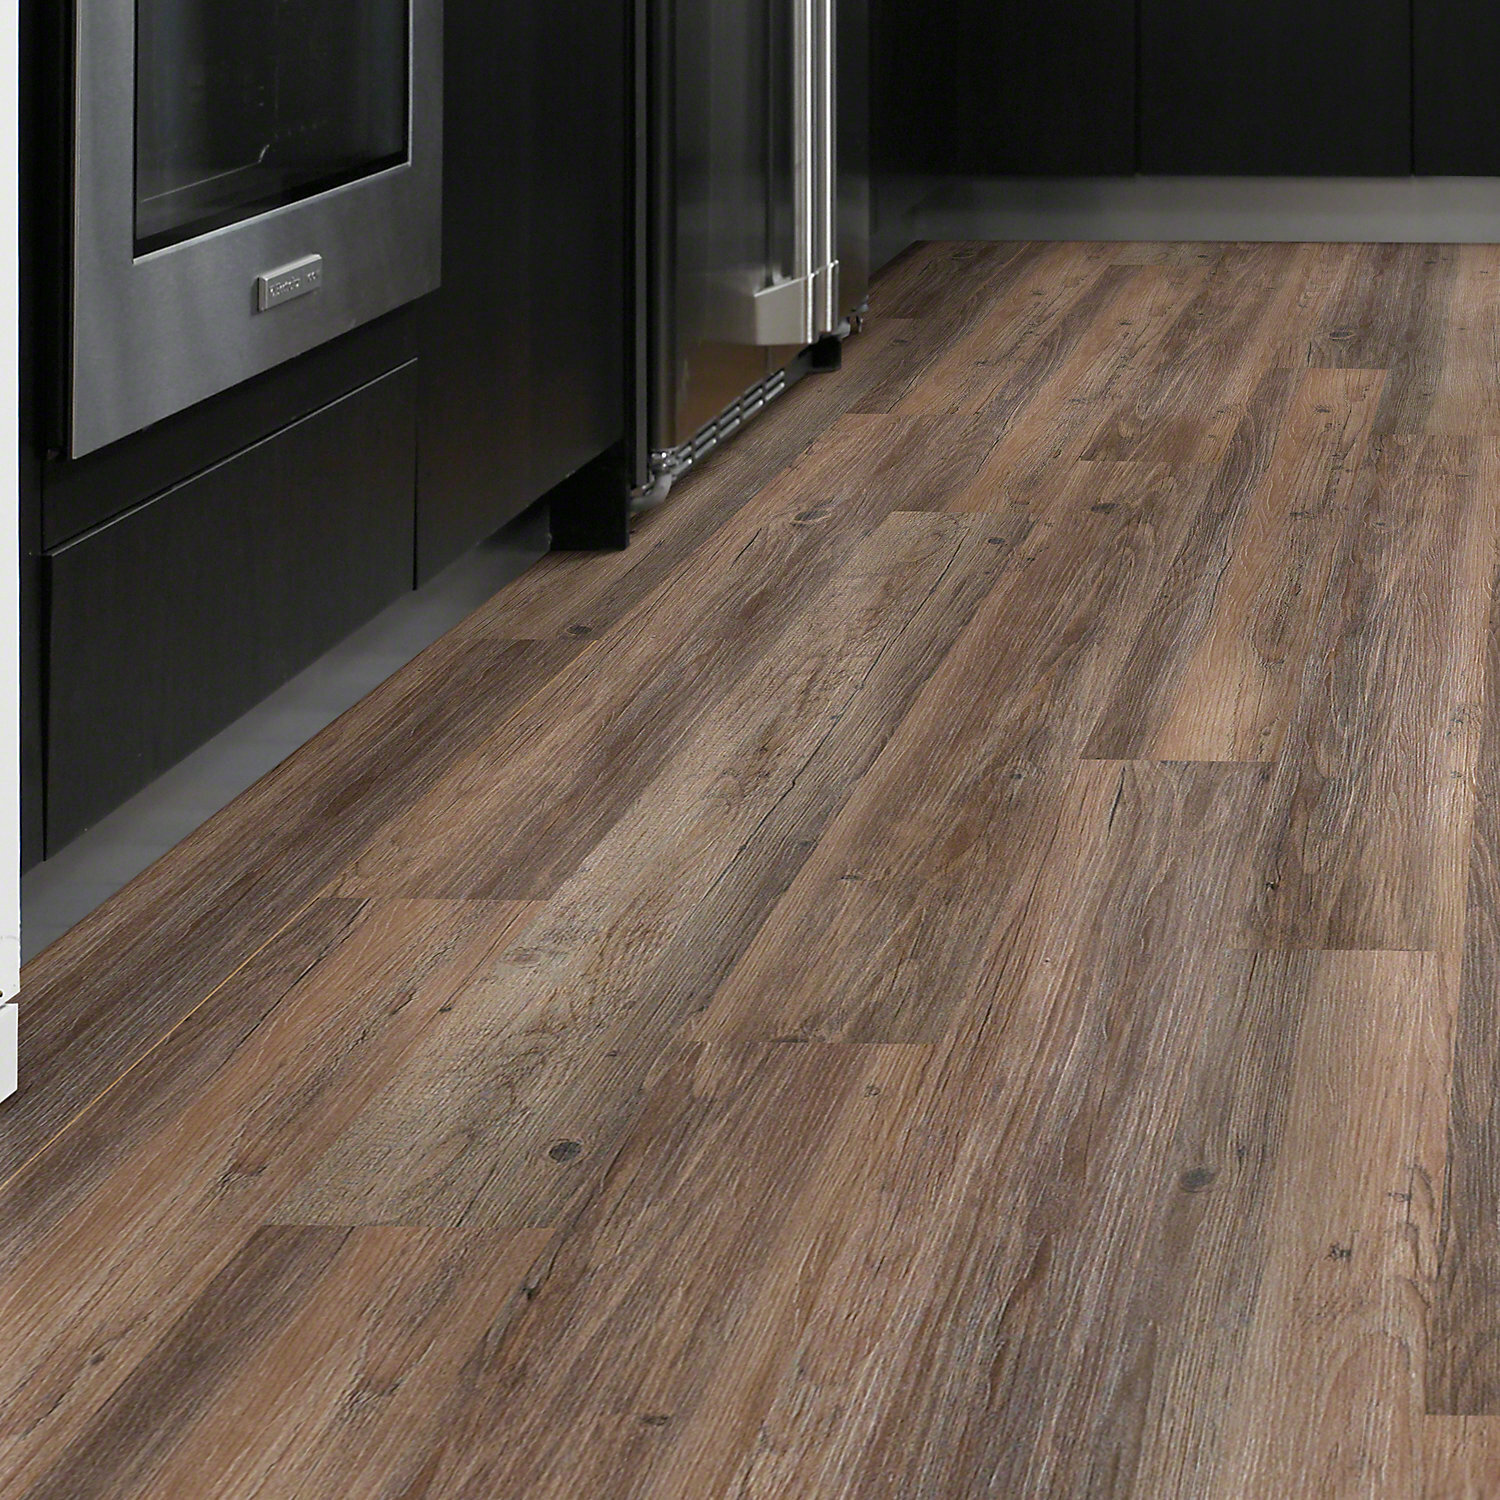 Shaw Floors Arlington 6 Quot X 48 Quot X 2mm Luxury Vinyl Plank In